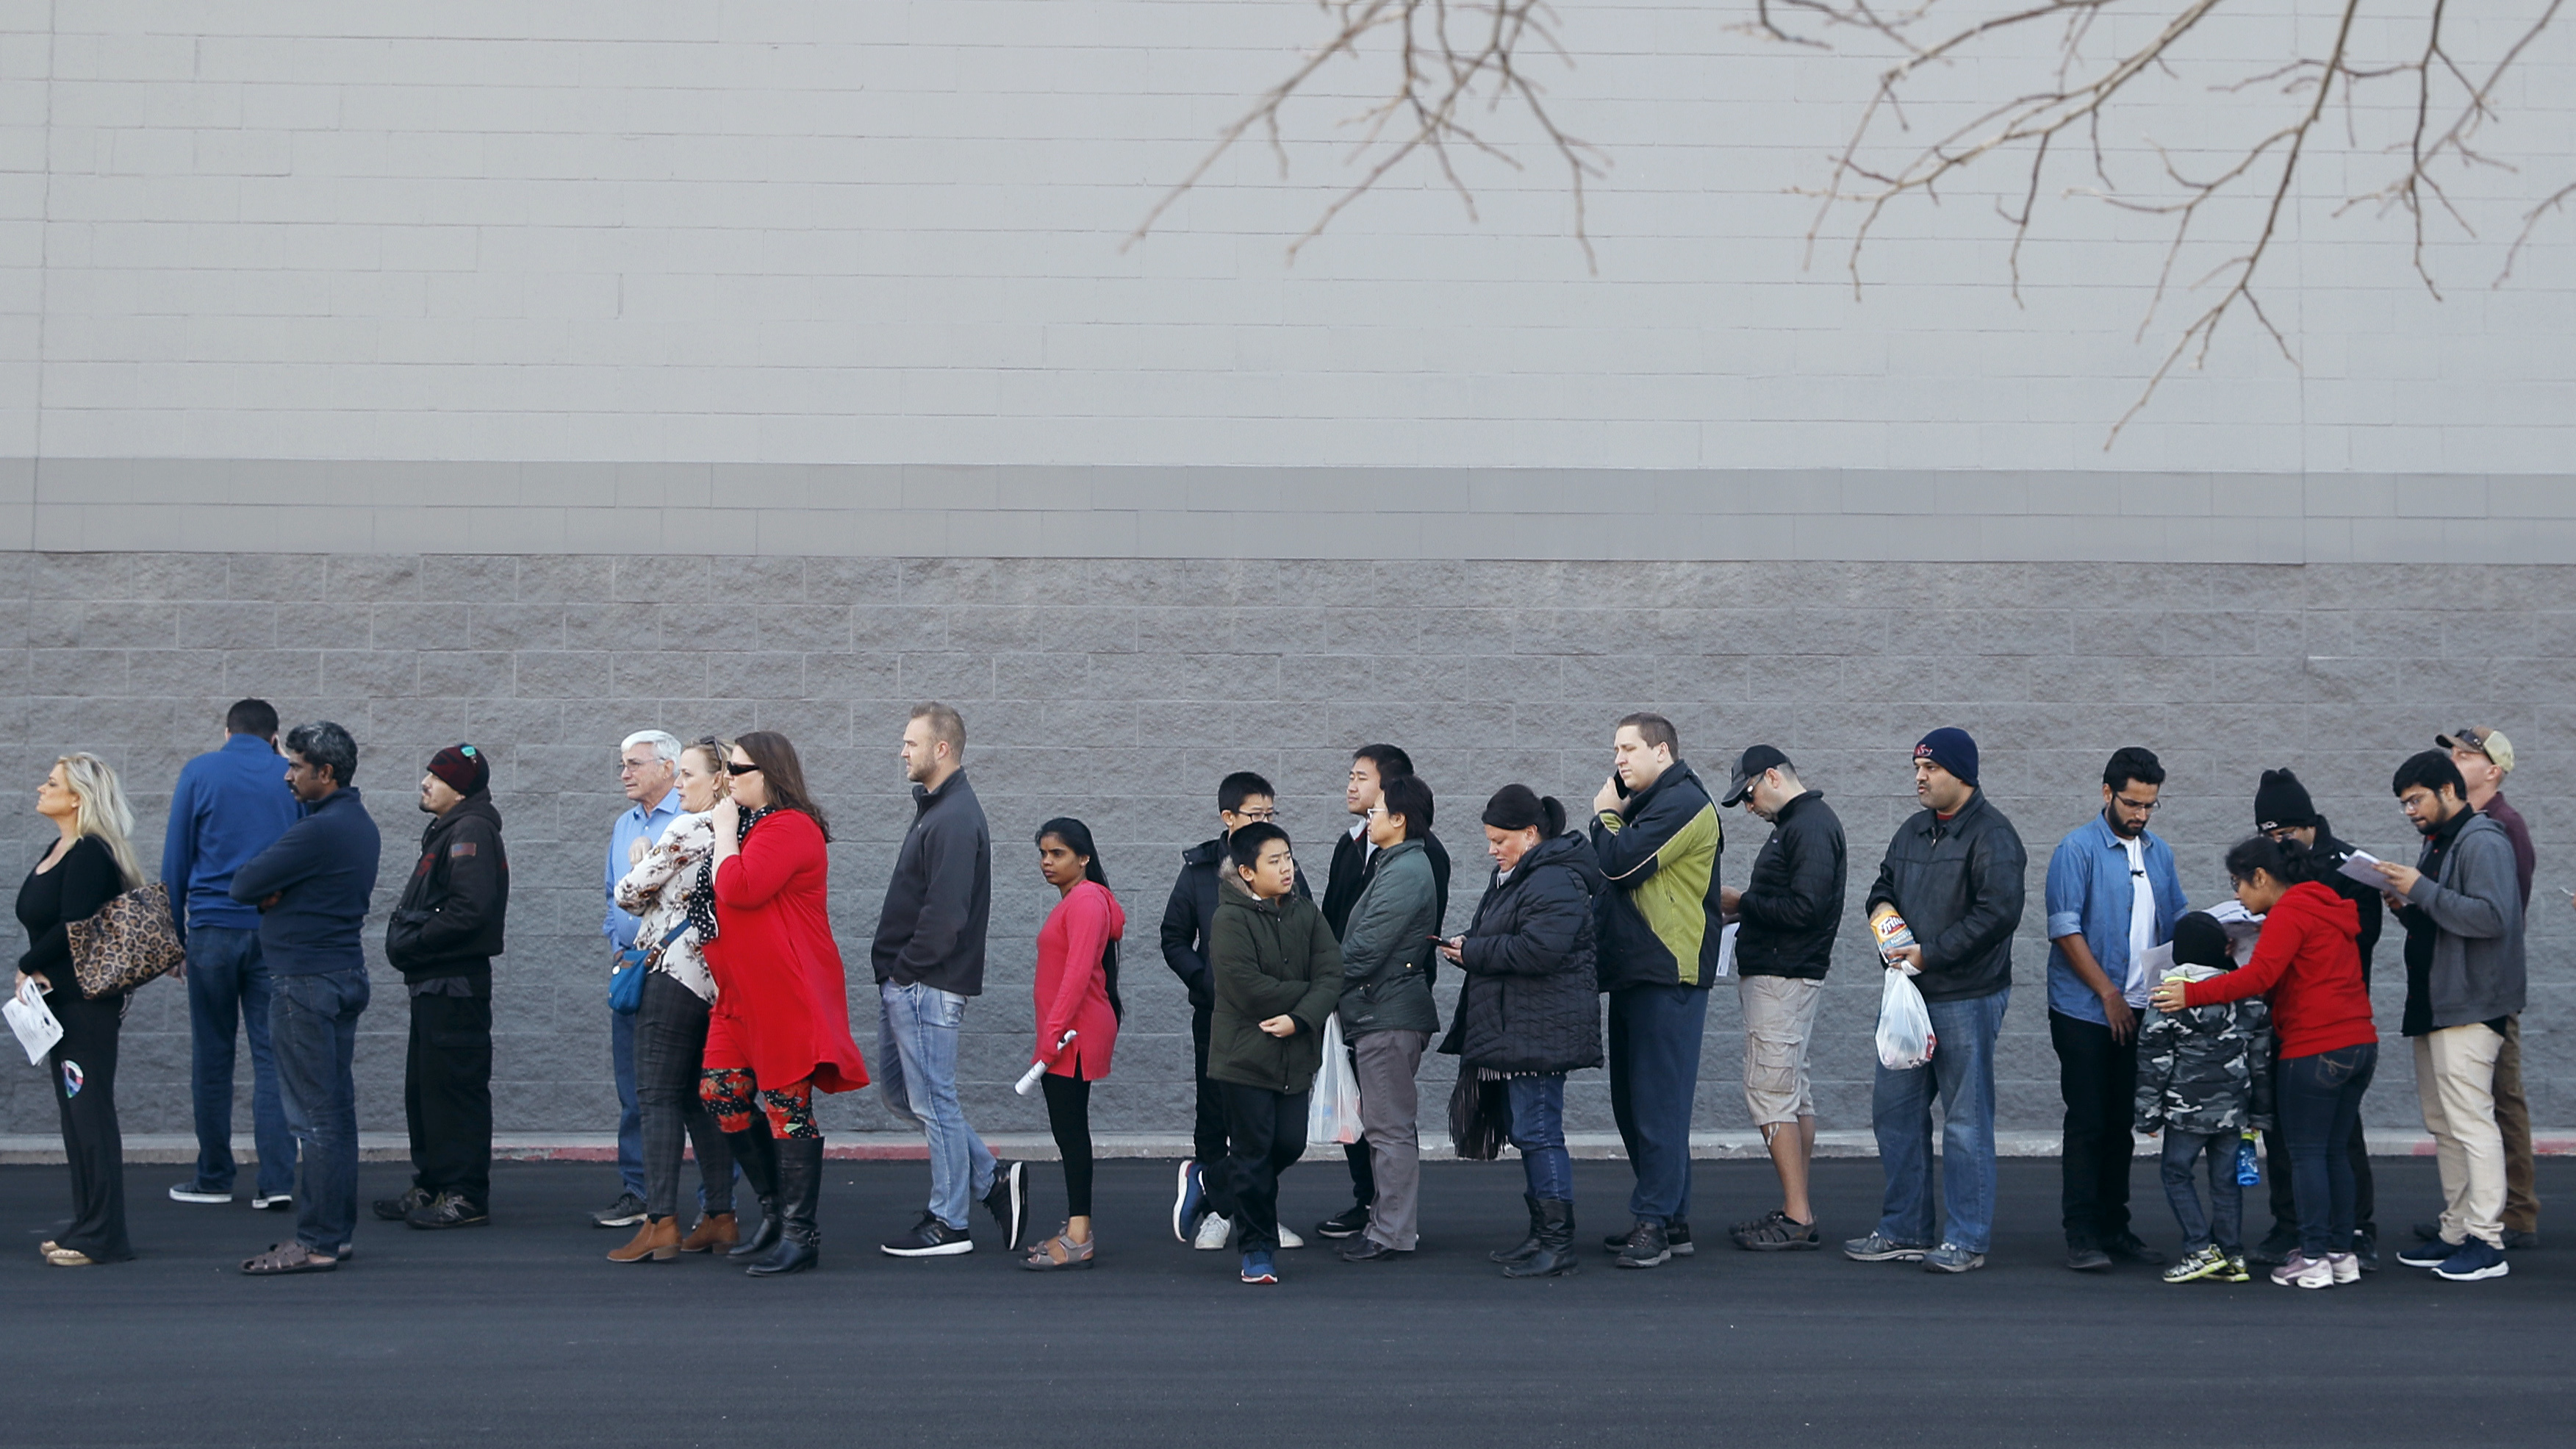 People wait in line for a Best Buy store to open for an early Black Friday sale on Thanksgiving Day 2018 in Overland Park Kan